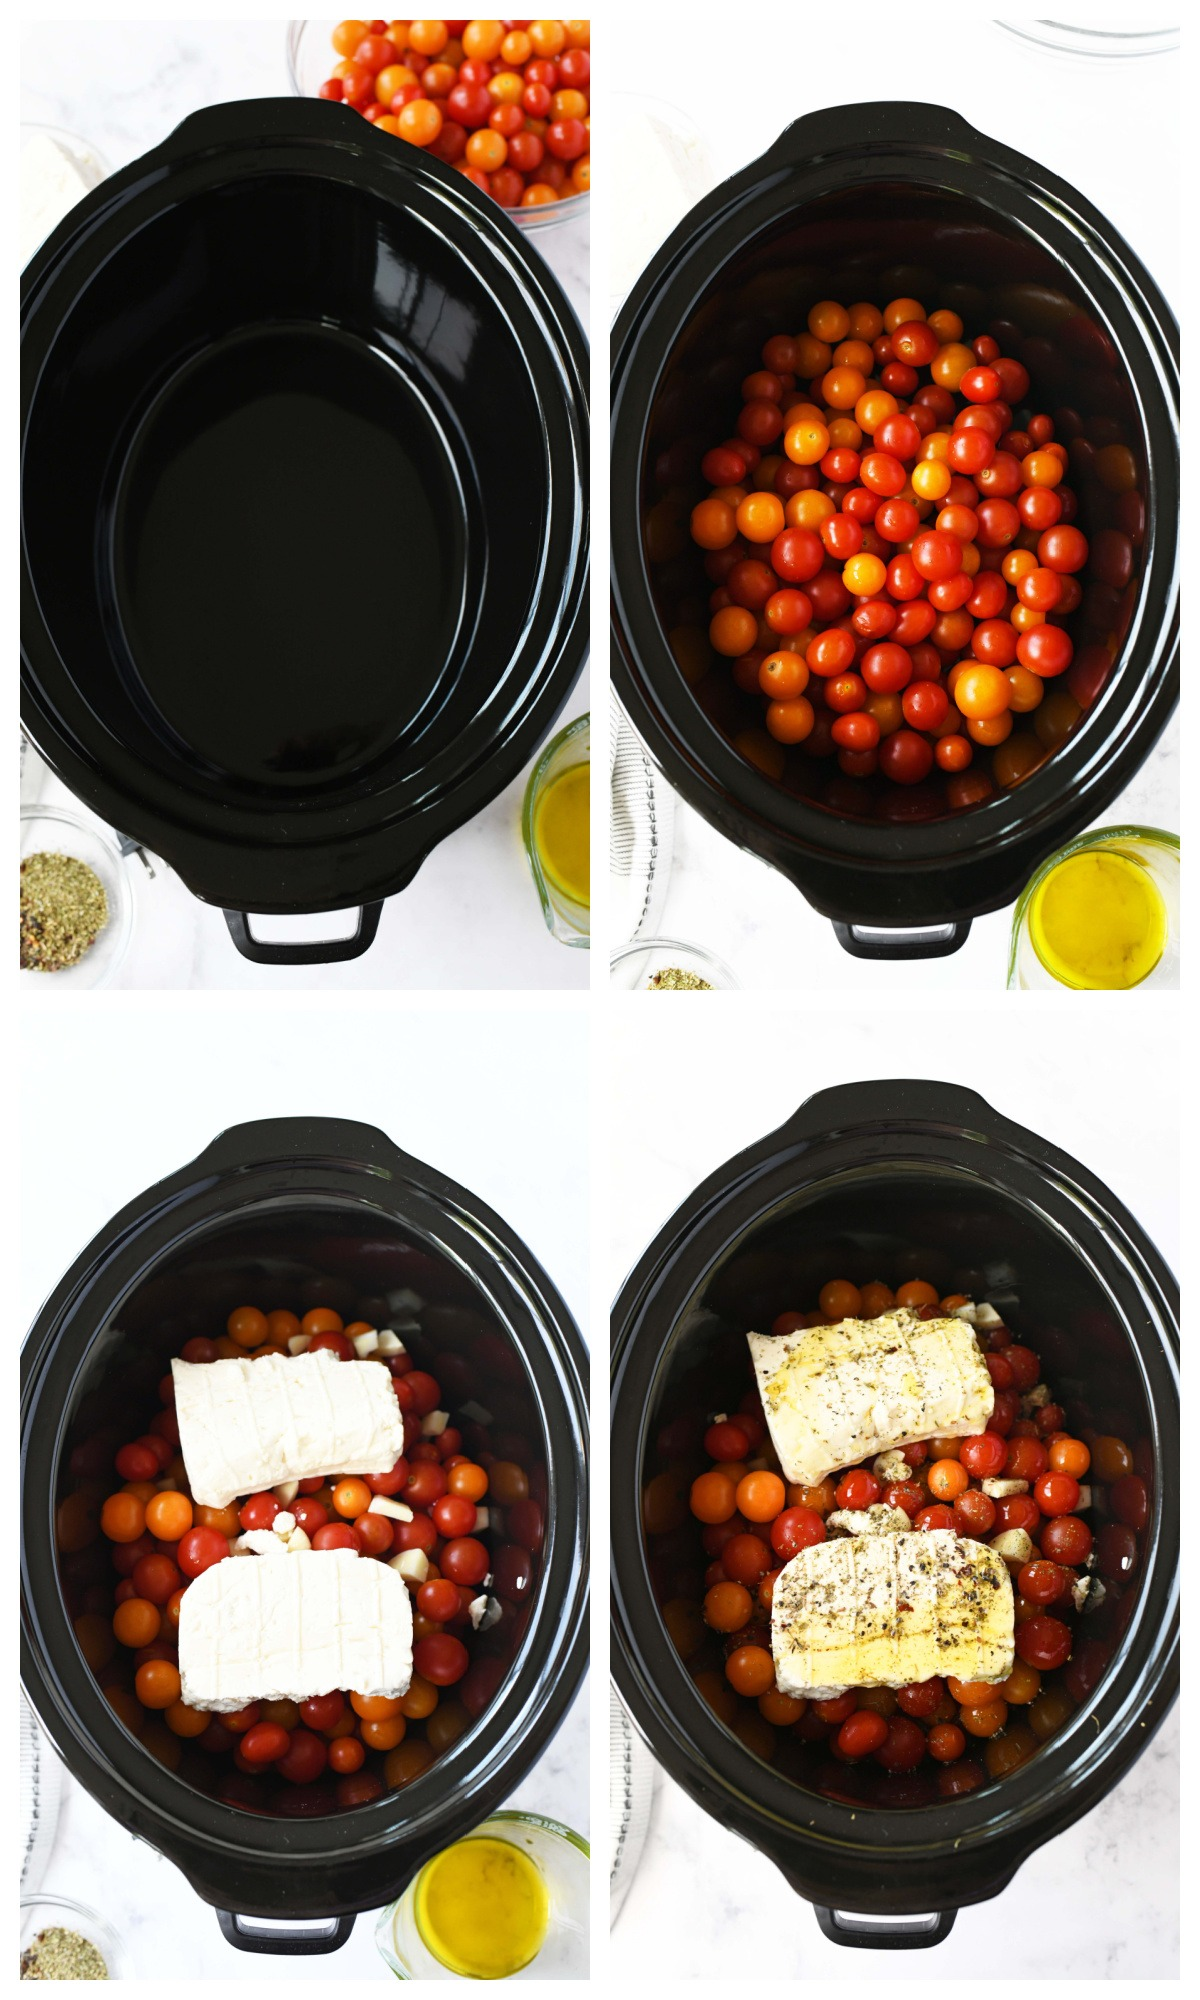 A 4 image collage of the steps to make slow cooker feta pasta.